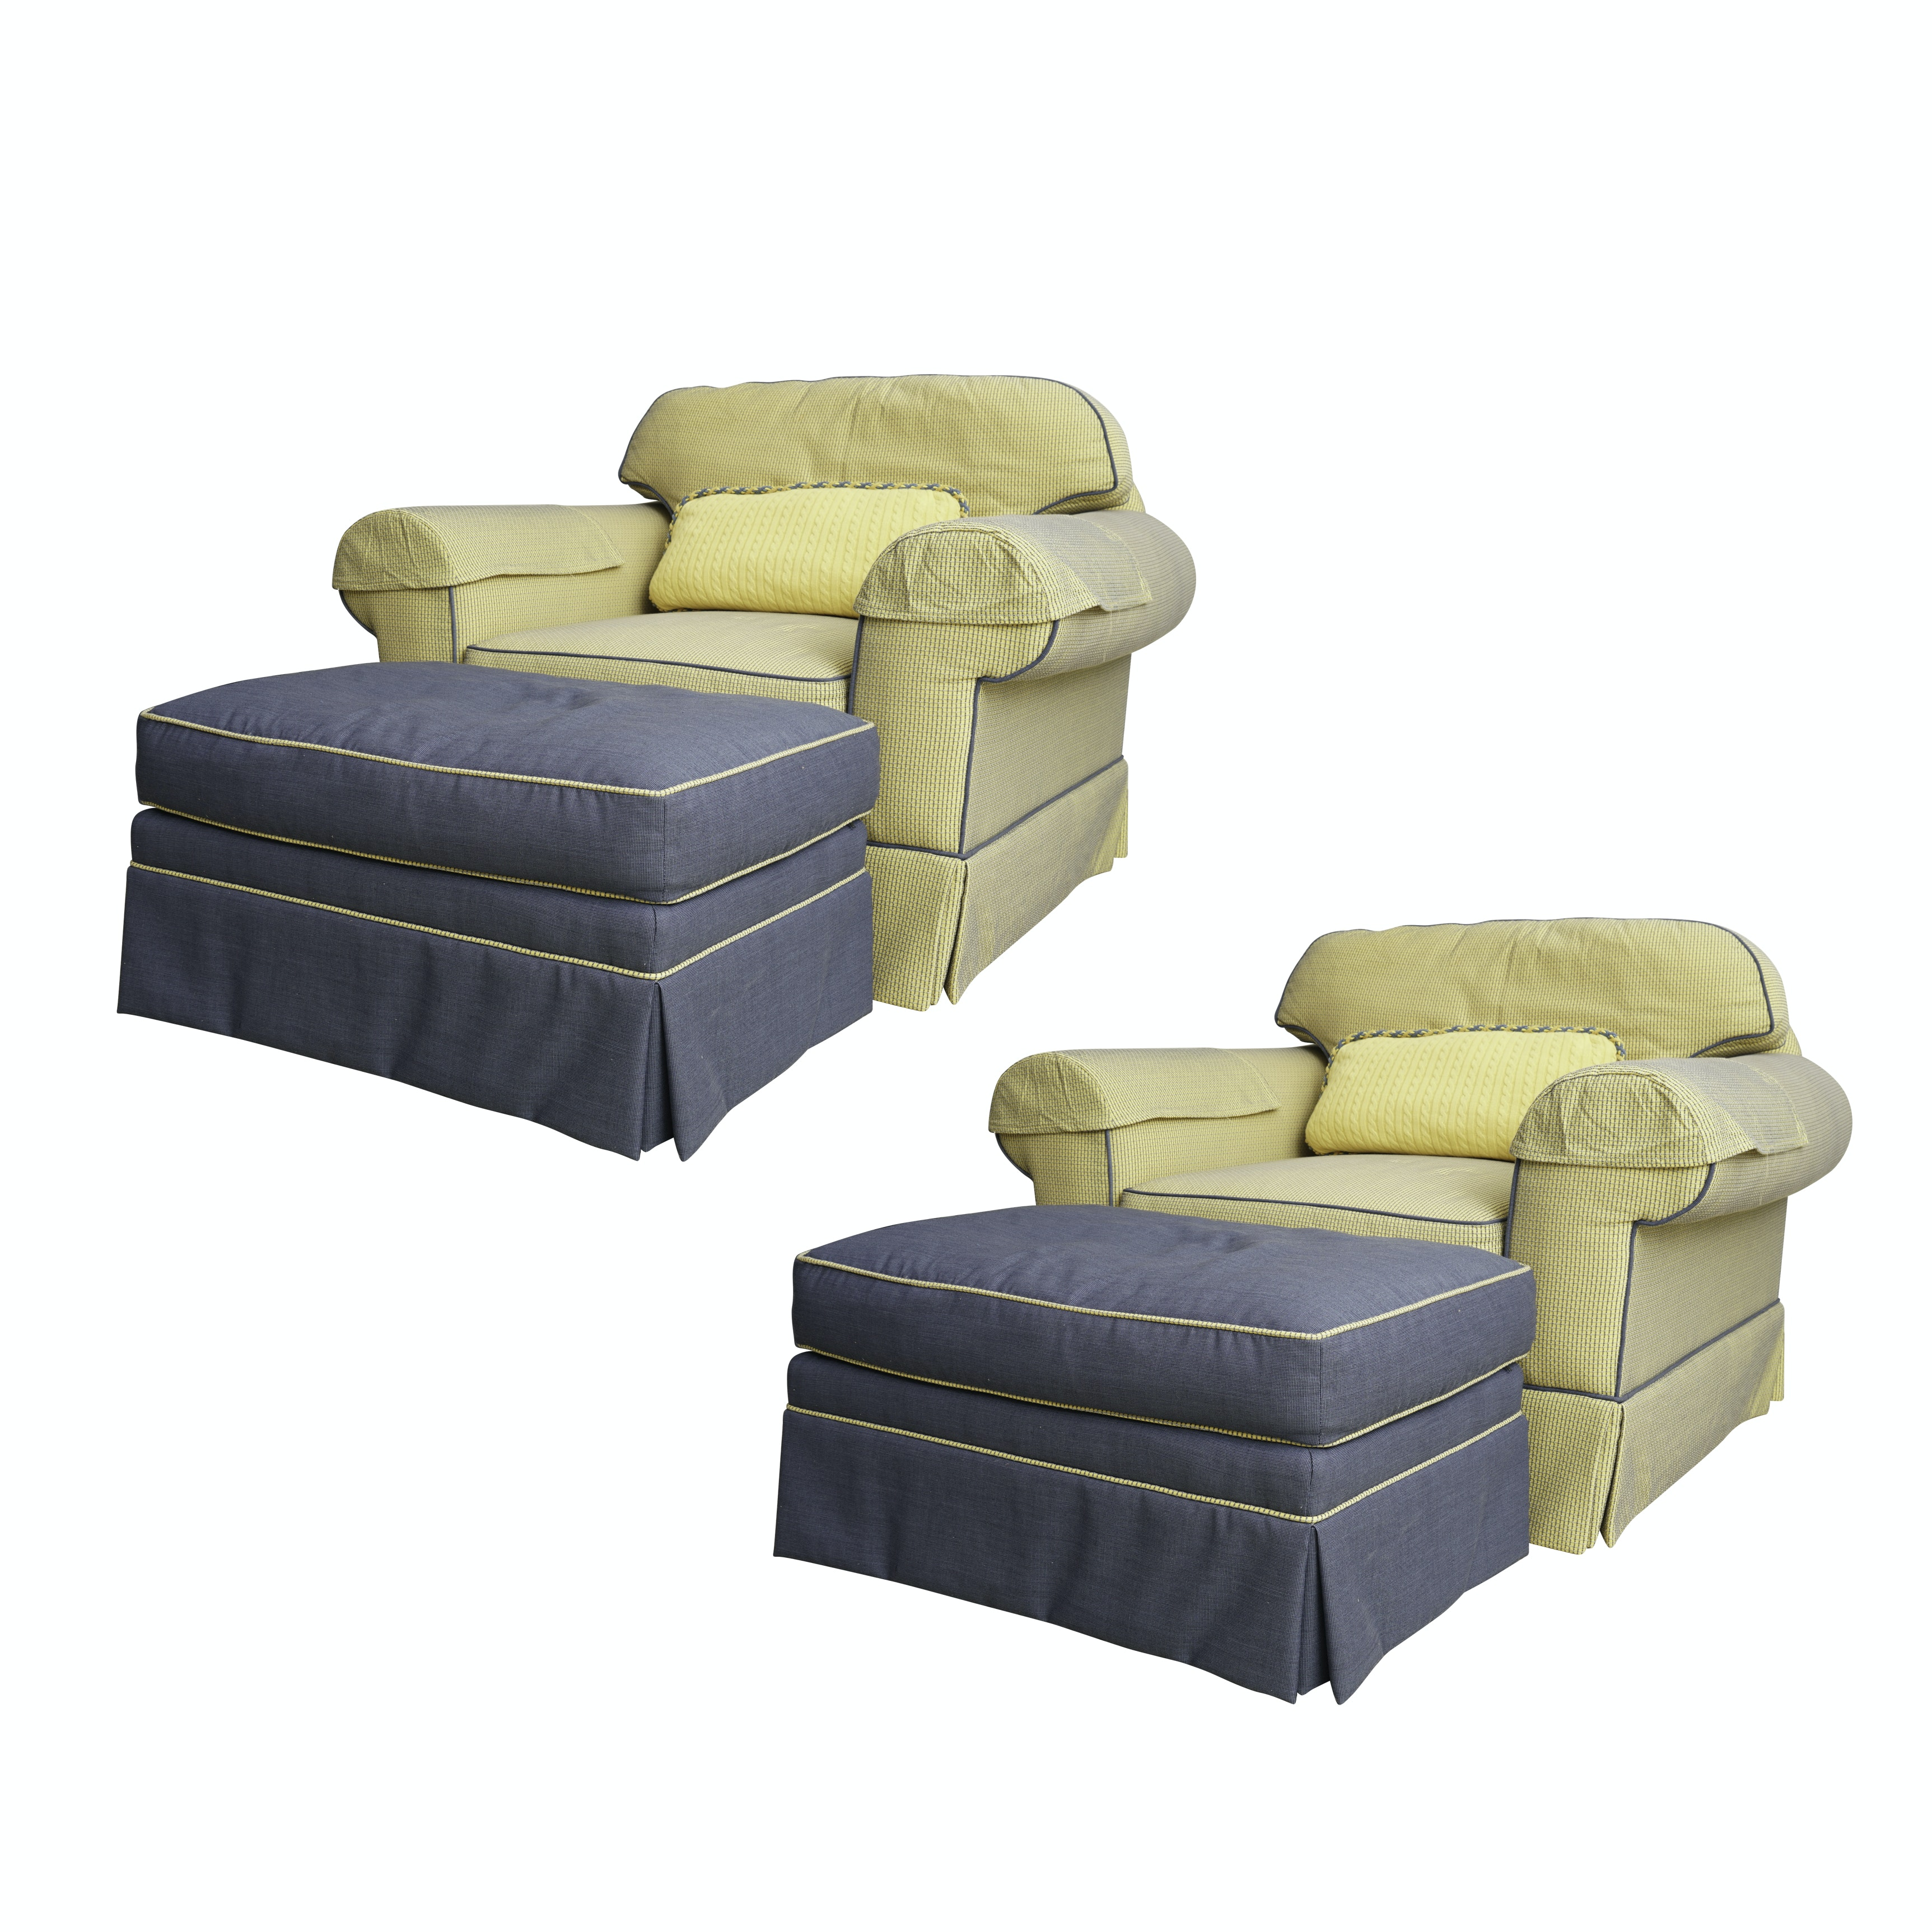 Yellow and Blue Oversized Armchair and Ottoman Sets by Century Furniture